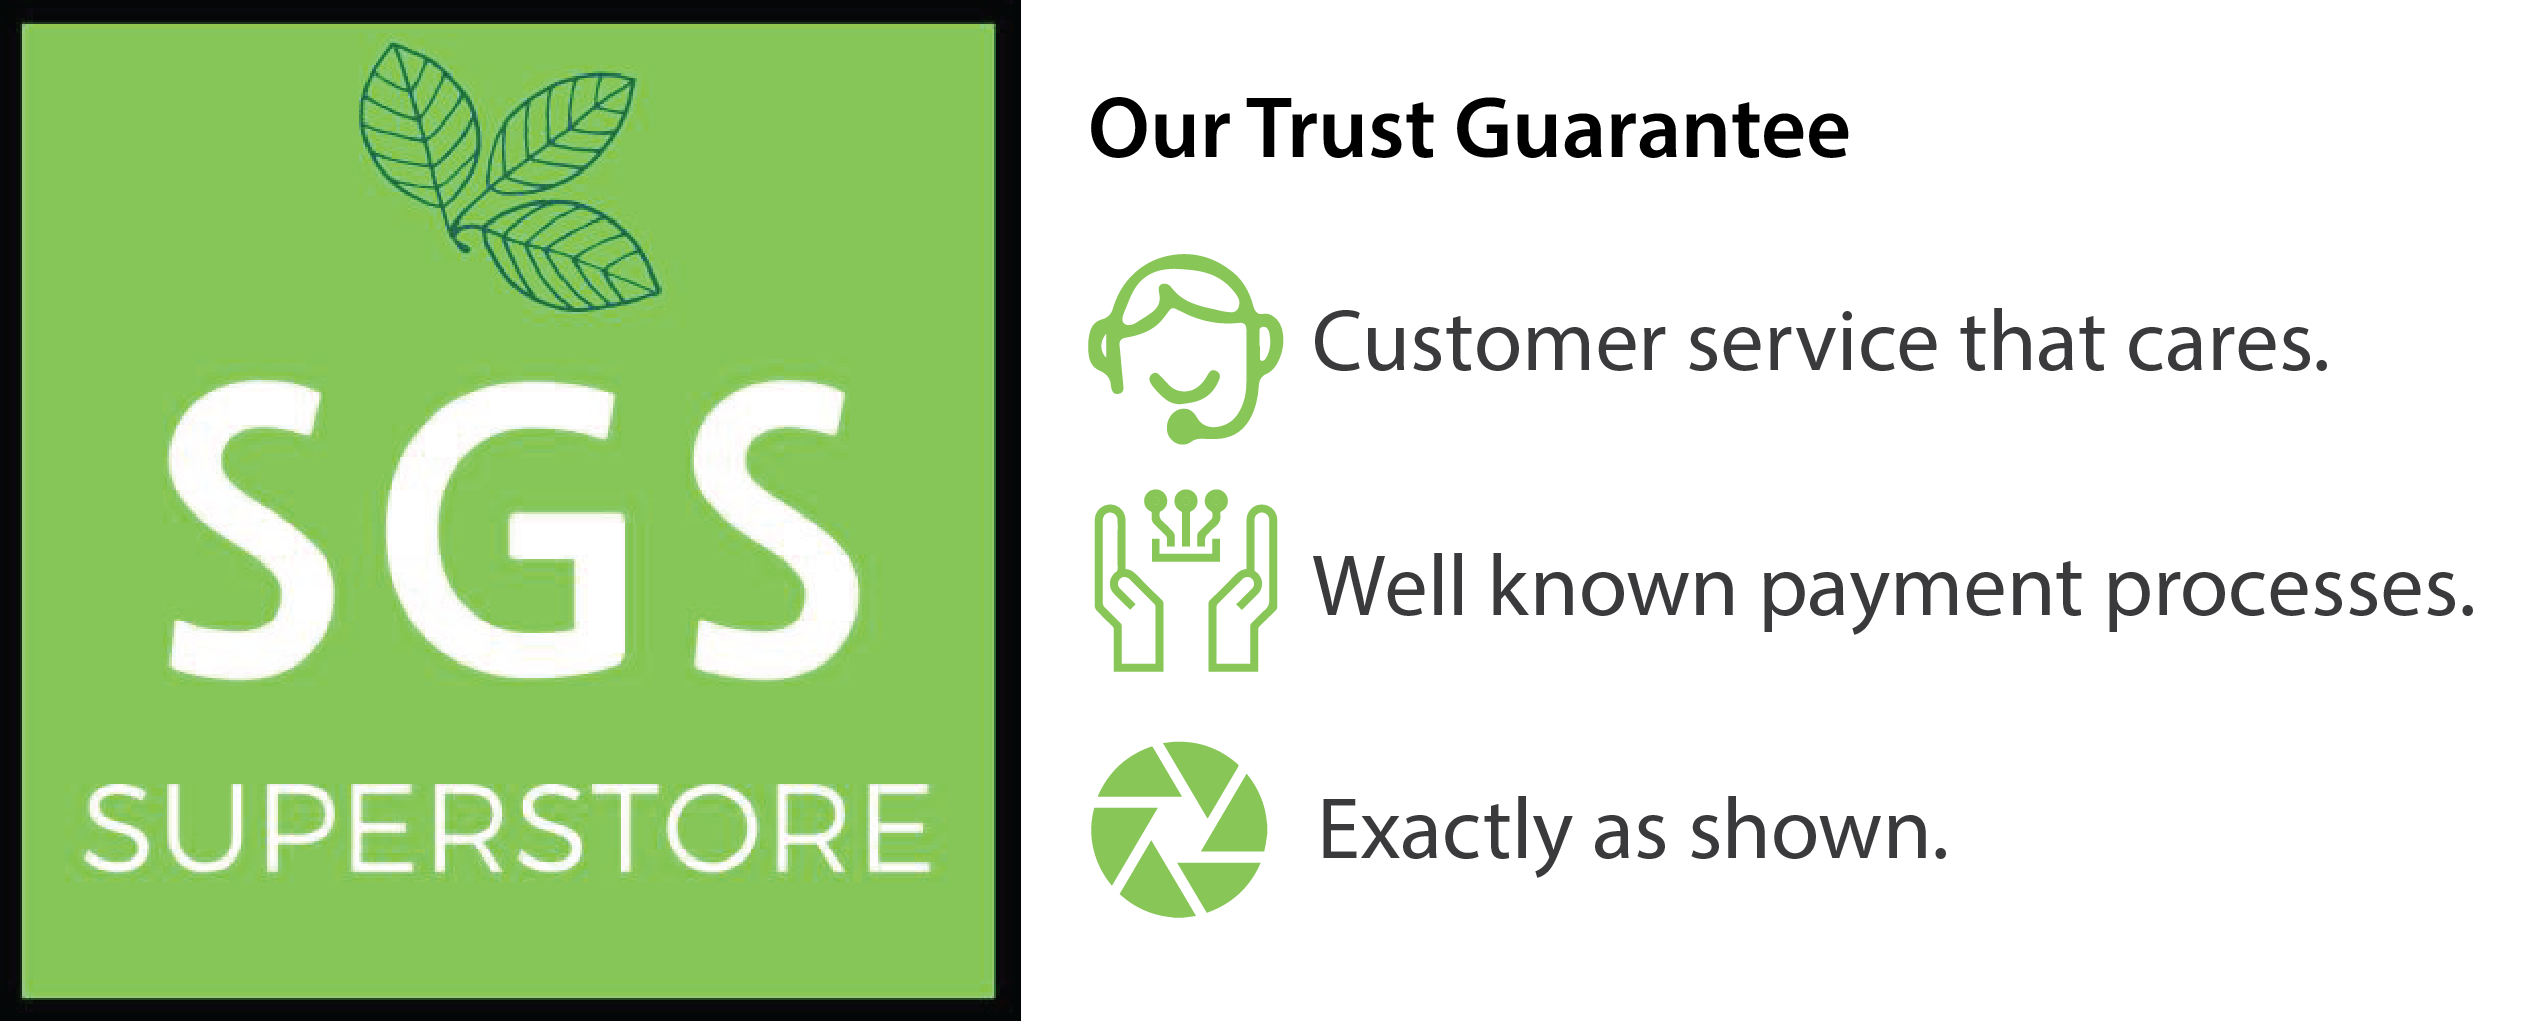 SGS Superstore Trust Guarantee